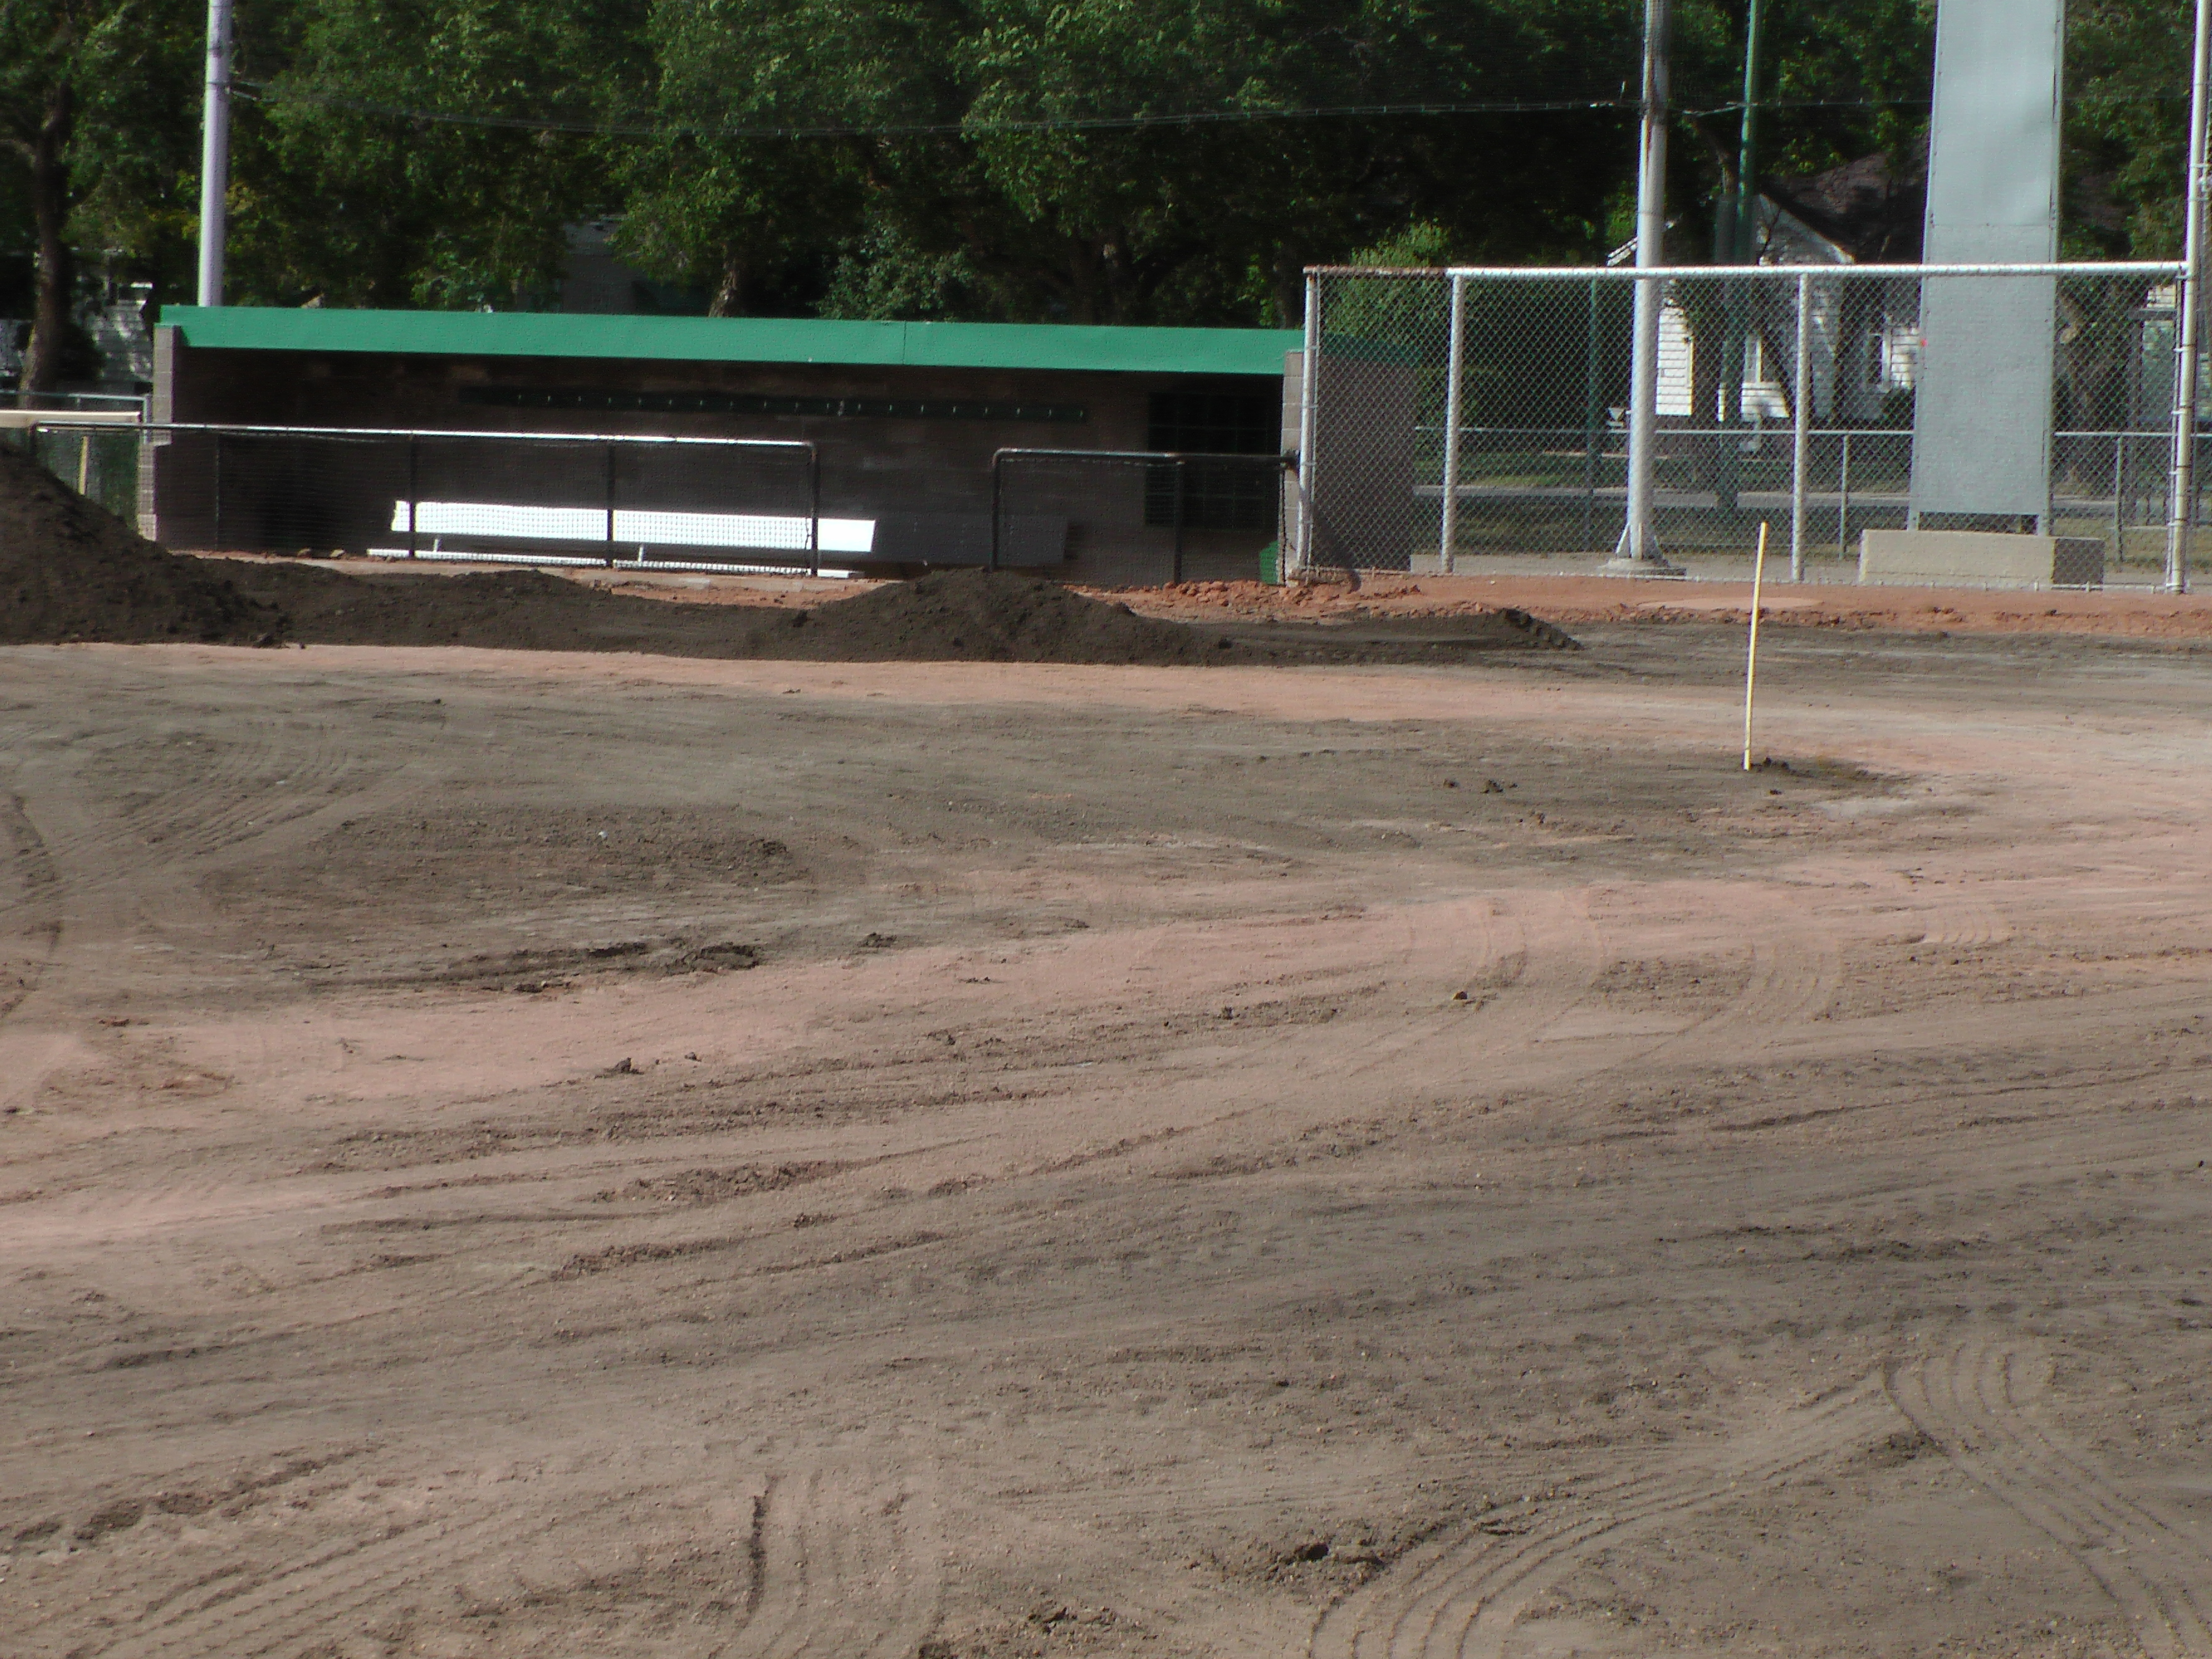 Aug 22 Optimist Park Field Renovations: New Top Soil Going In, after 45 dump trucks of dirt and grass removed! Pics and Video...check back for more!  - Image 7